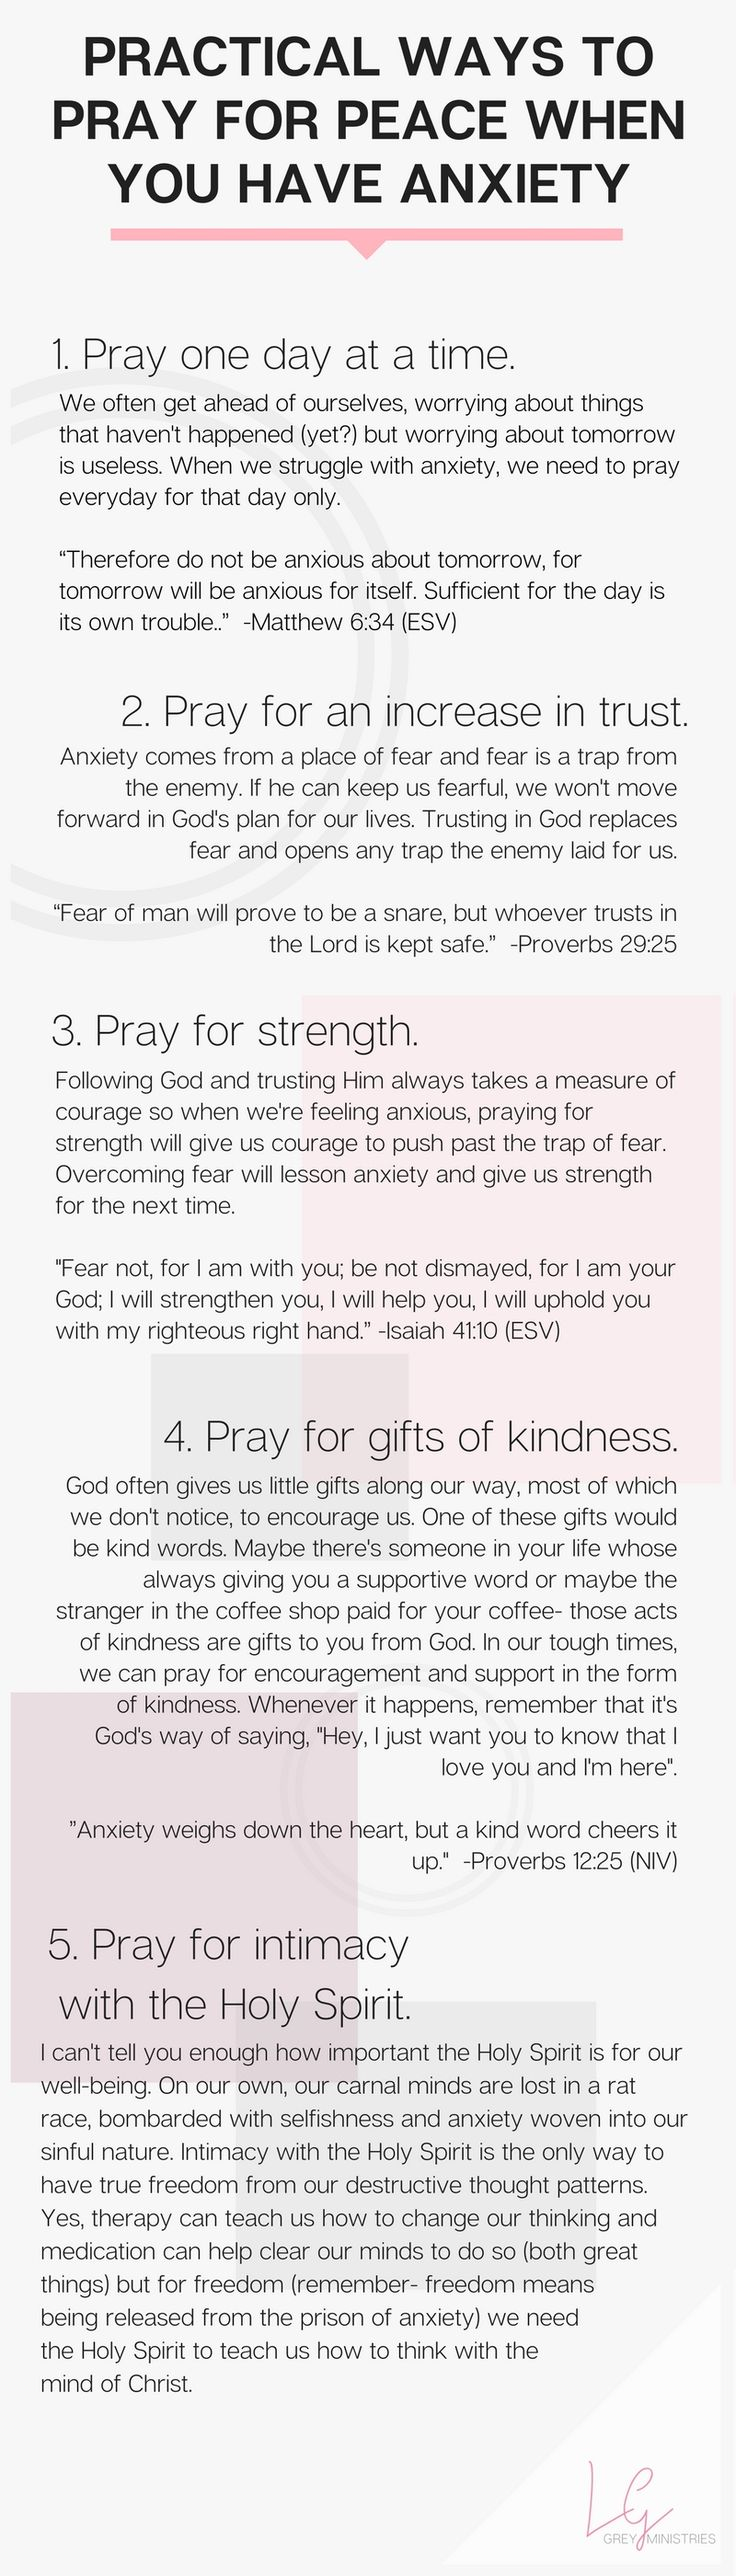 //Five prayers to pray for when you're struggling with anxiety. What does God say about anxiety anyway? Should Christians be anxious? Read more or PIN for later at LeahGrey.com